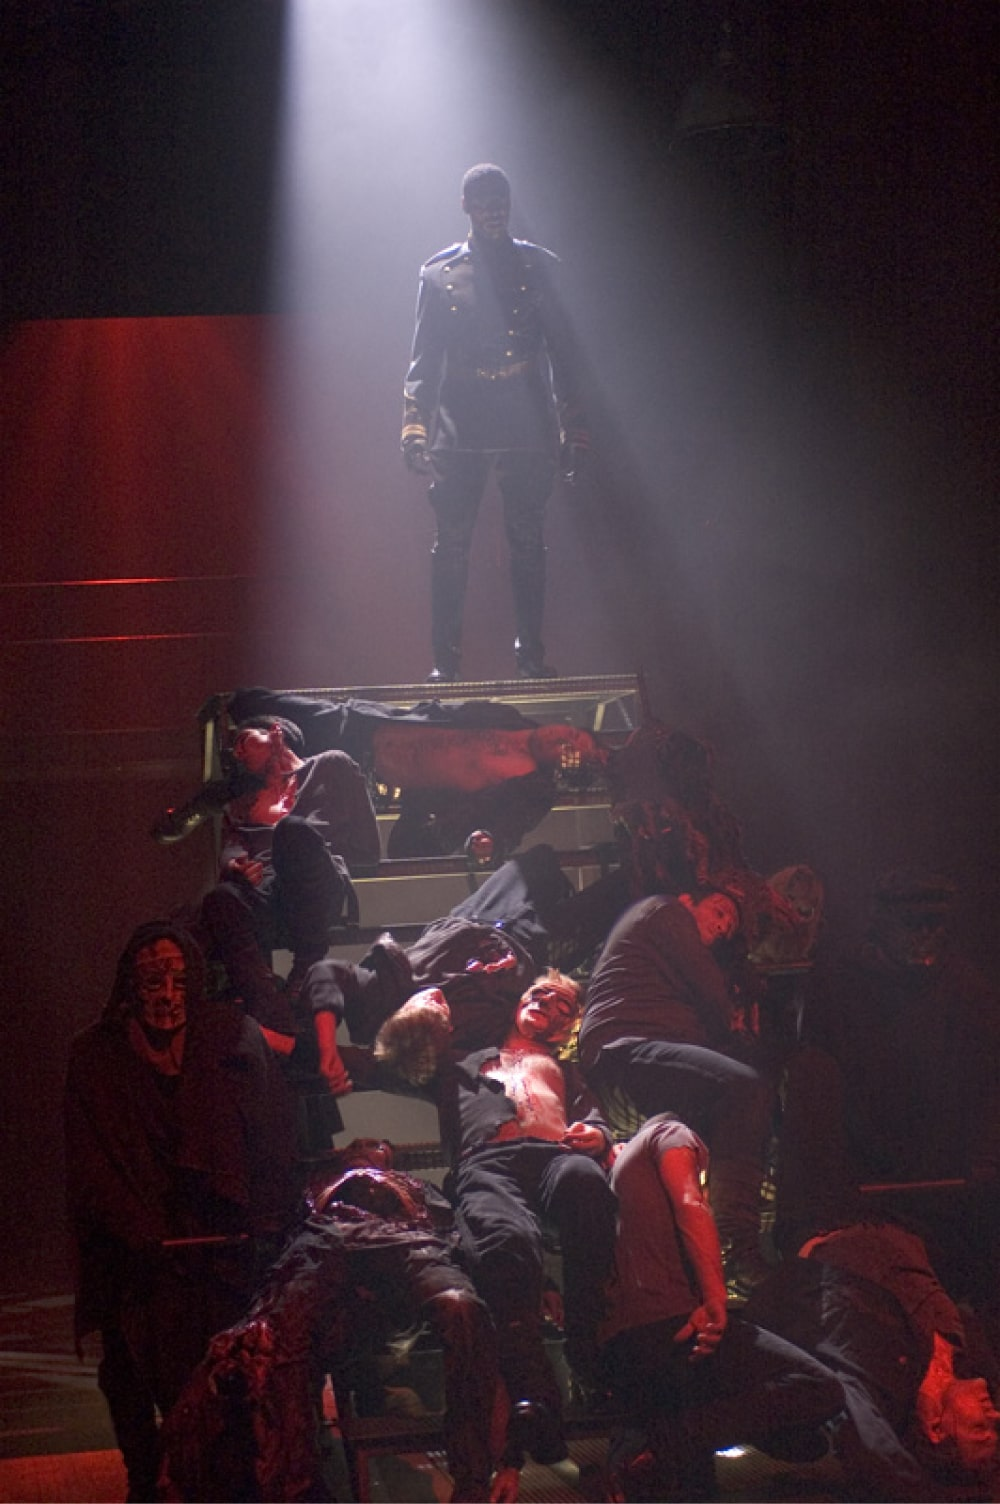 Soldier stands at top of staircase littered with dead soldiers in strong red back light.